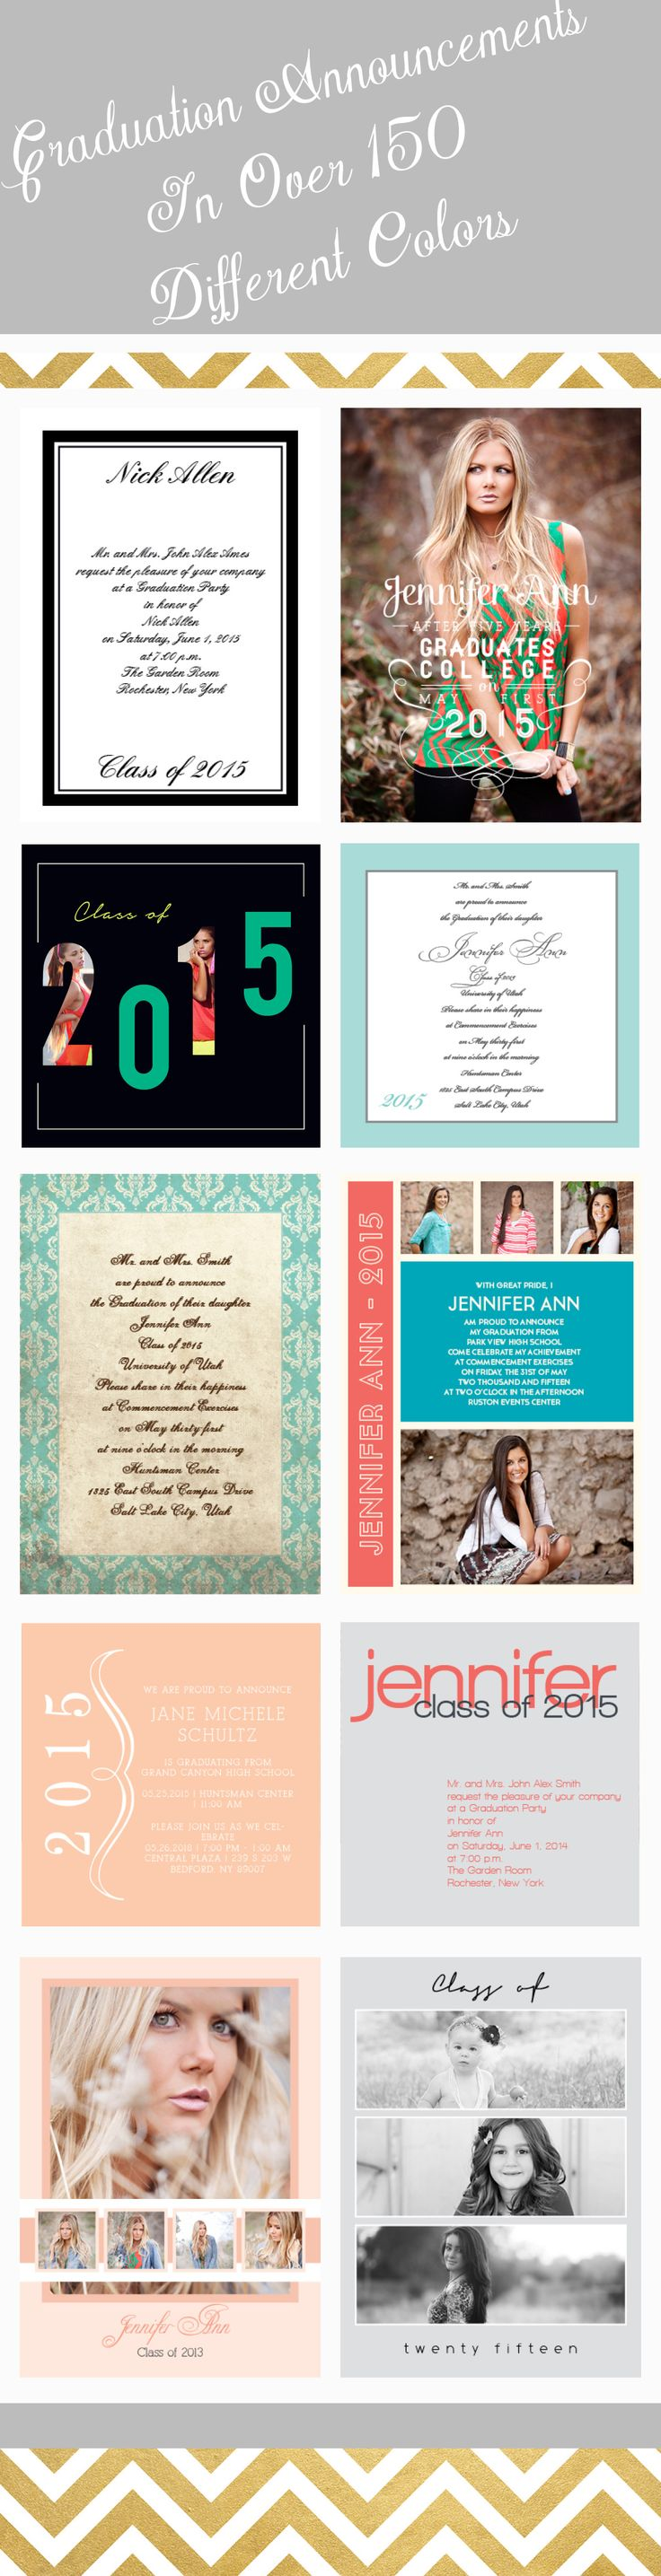 177 best Graduation images on Pinterest Grad parties Graduation